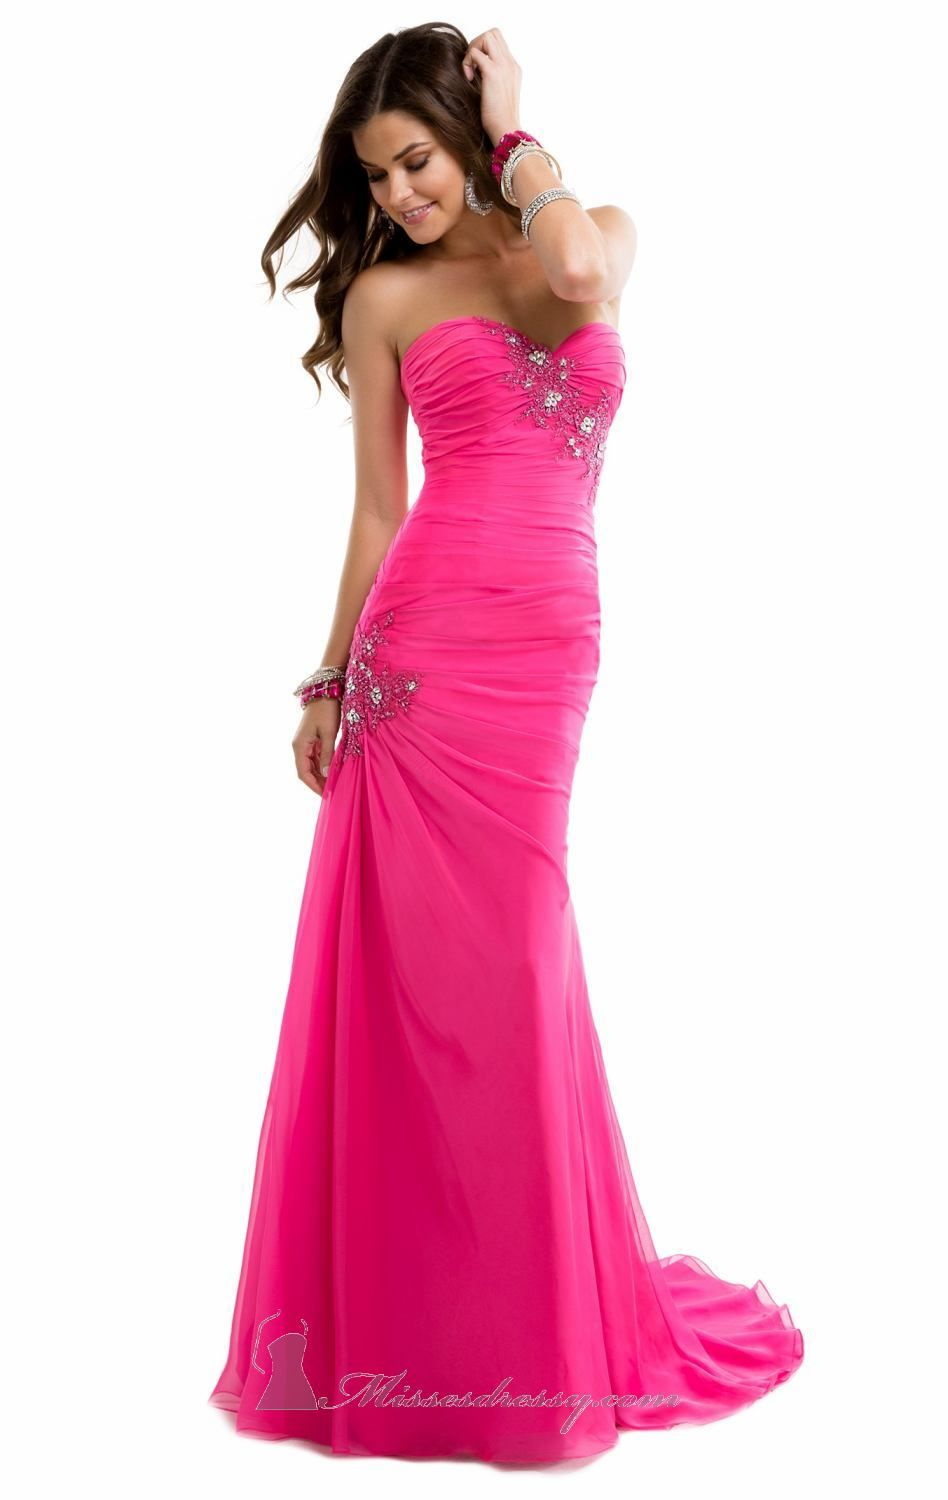 Sweetheart Gown by Flirt by Maggie Sottero | Vestidos fucsia rosados ...